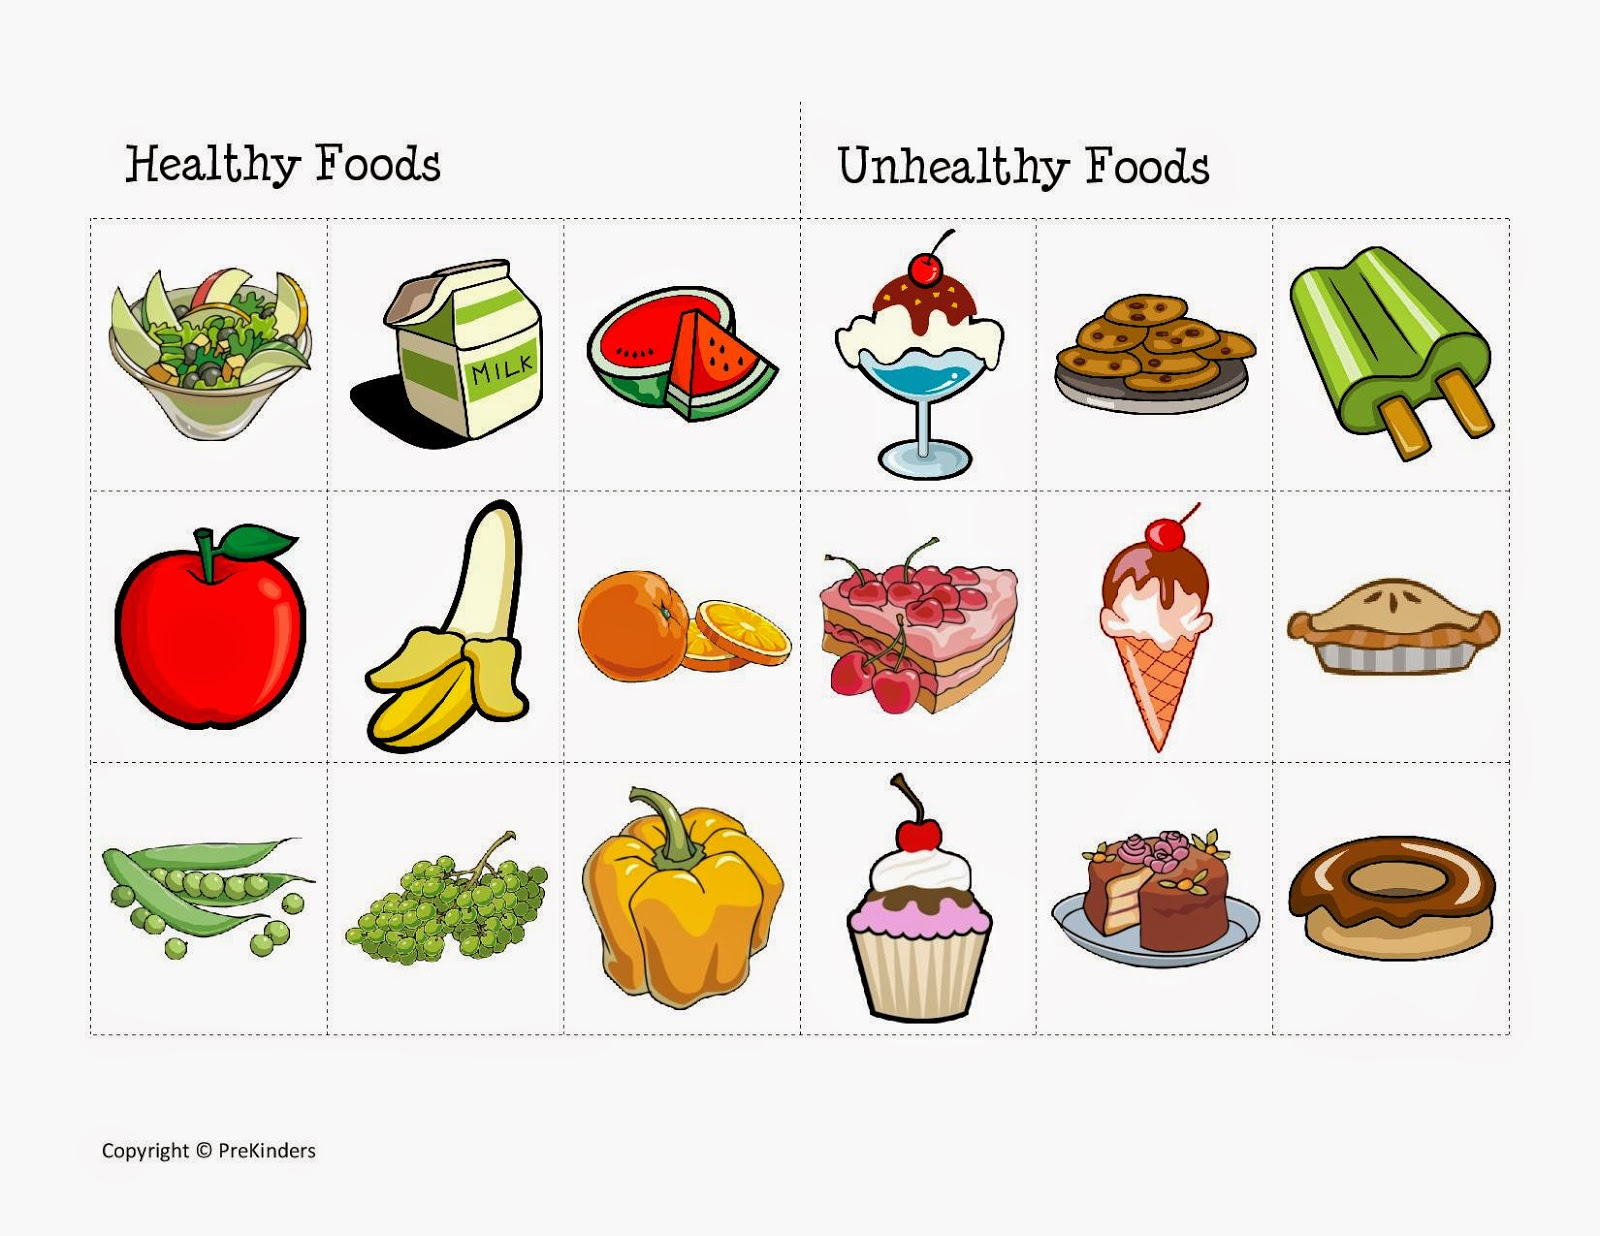 Worksheets Classify the food as Healthy or unhealthy and as fruitsUnhealthy Food Vs Healthy Food